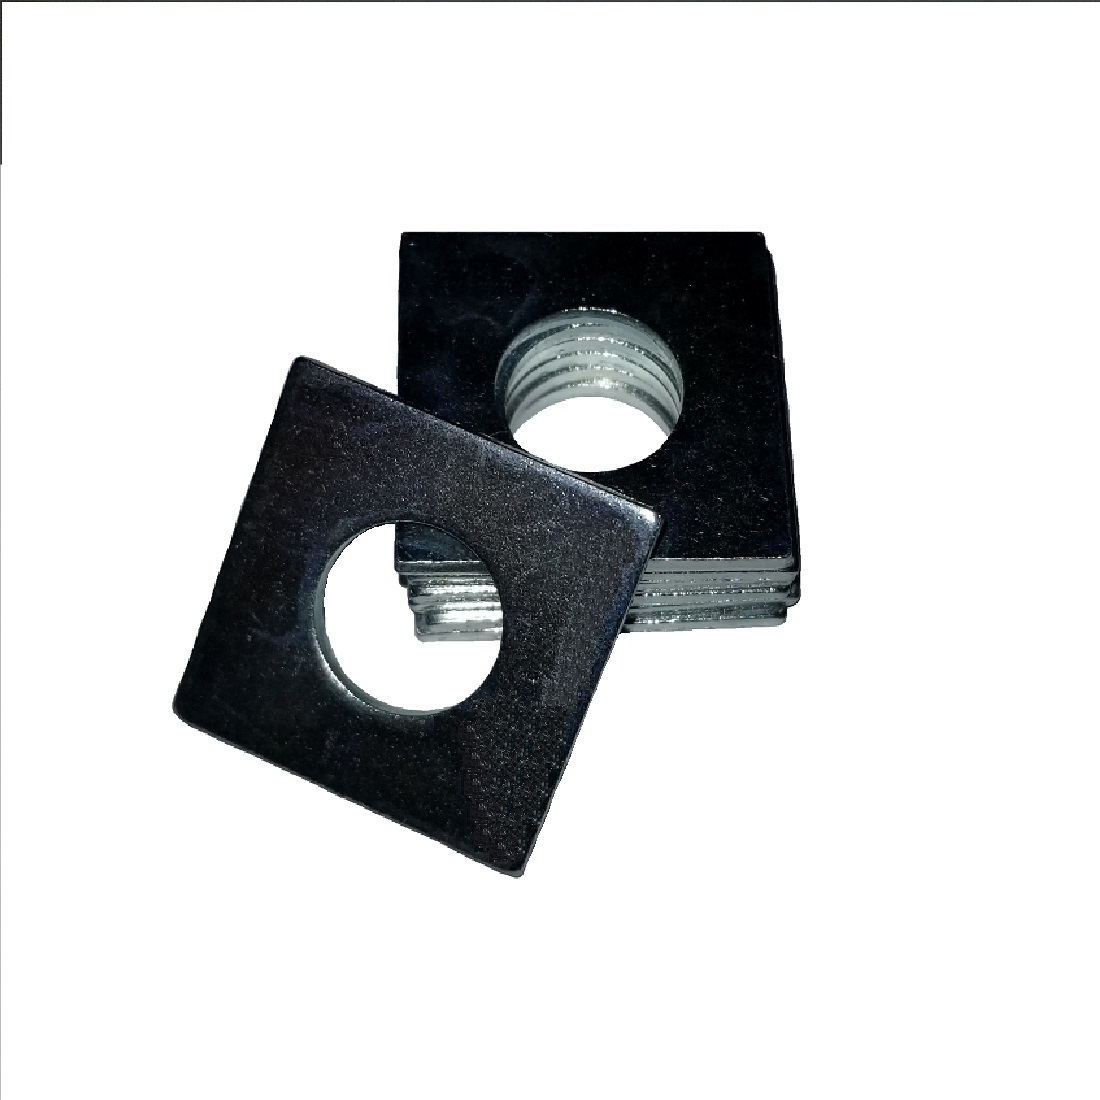 Square OD Washer - 0.115 ID, 0.225 OD, 0.048 Thick, Stainless - 300 Series